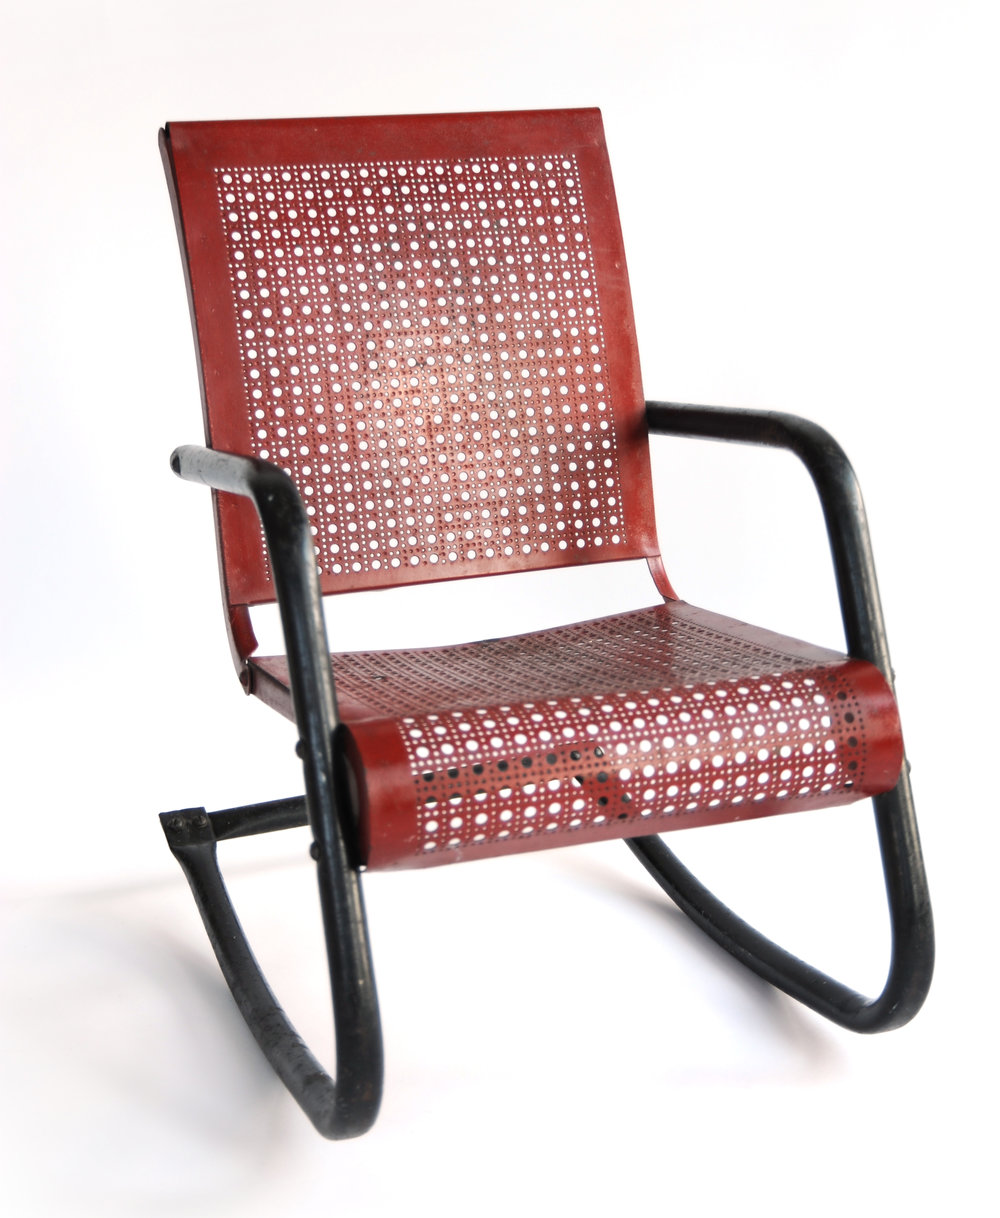 Mesh Child Rocker (red) Unknown Designer Unknown Origin Unknown Date Red Metal H 24 in W 15 in D 23 in LIST PRICE: $375 DESIGNER DISCOUNT PRICE: $318.75 LEAD TIME: 3-5 Days Shipping & Handling QUANTITY IN STOCK: 1 ONLINE PLATFORMS: kM Web, Artsy, 1st Dibs